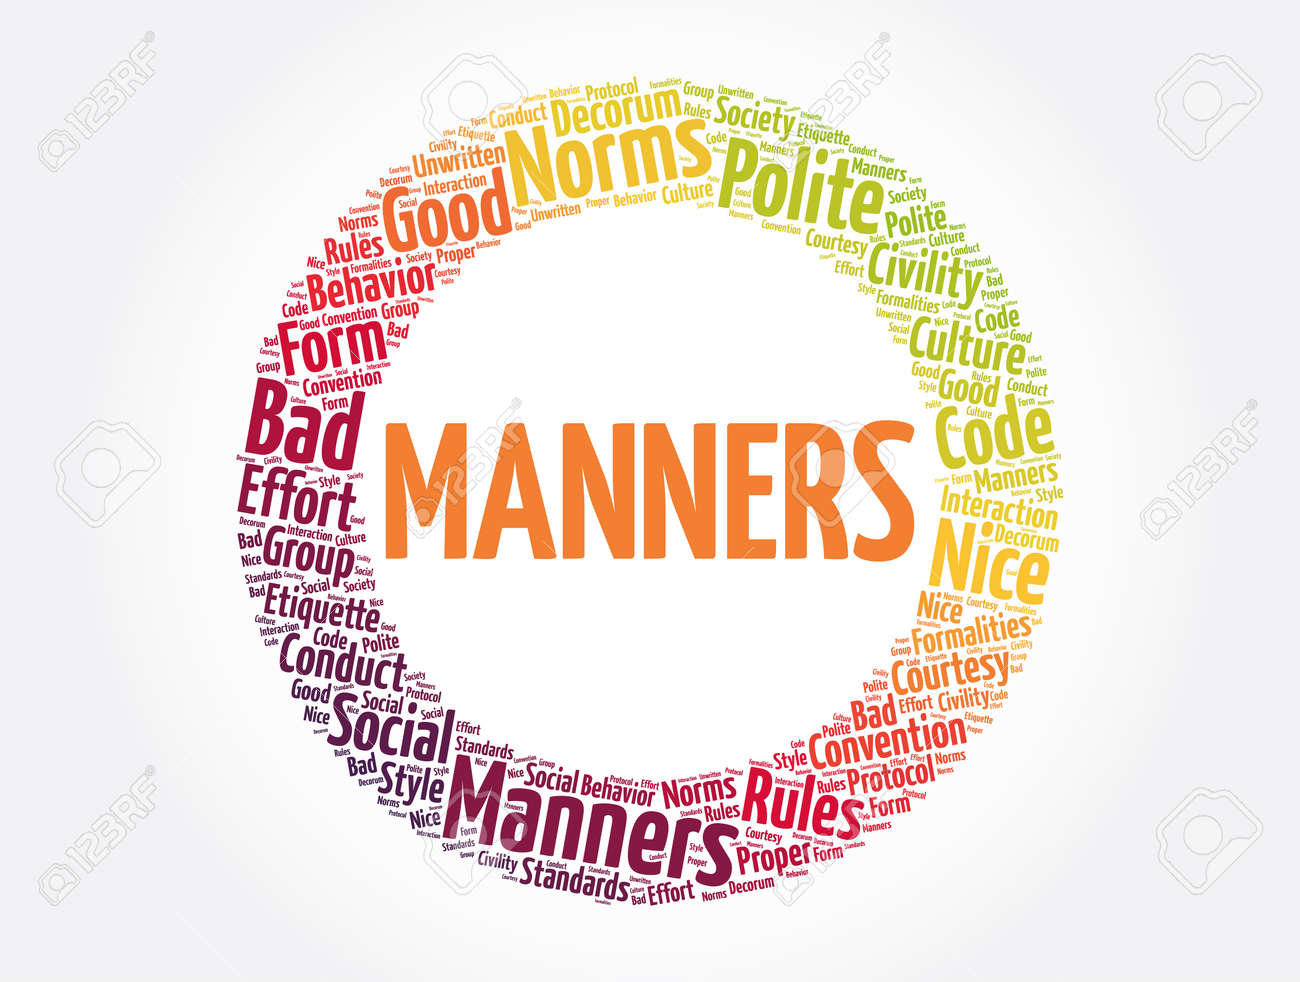 Manners word cloud collage, concept background - 166922383